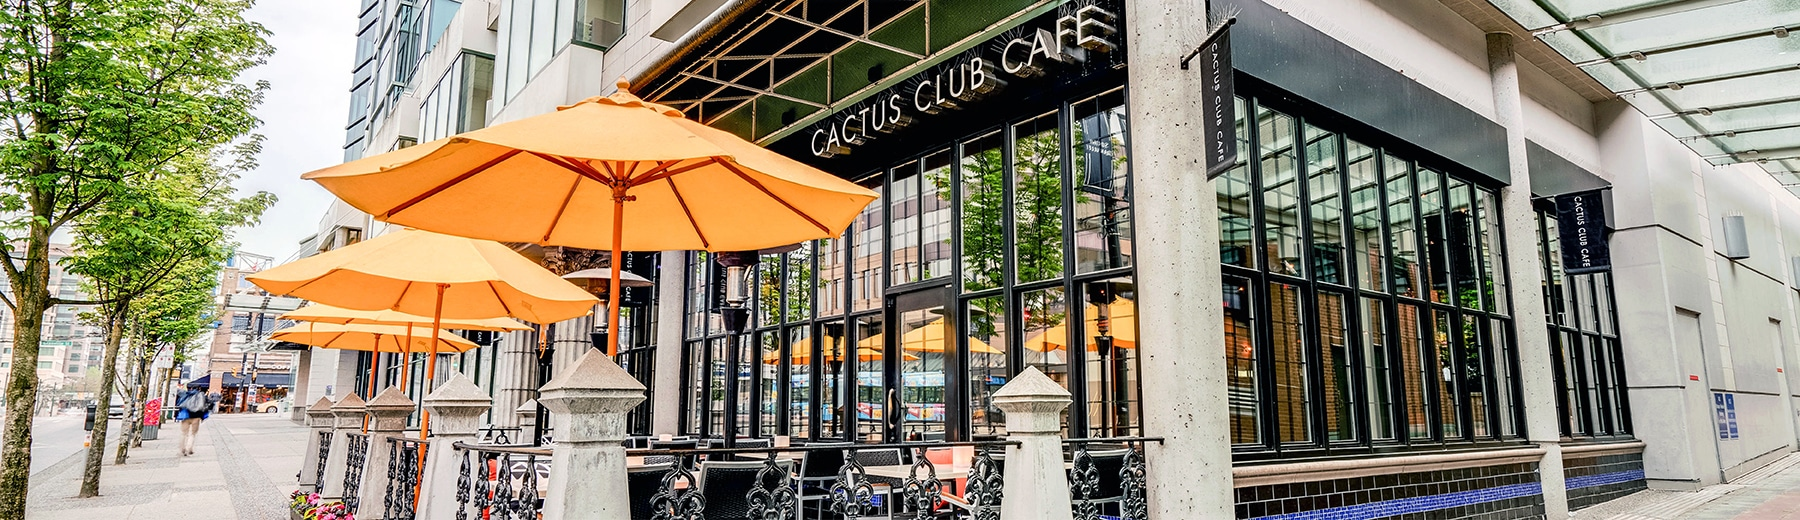 West Broadway and Granville Street Cactus Club Cafe